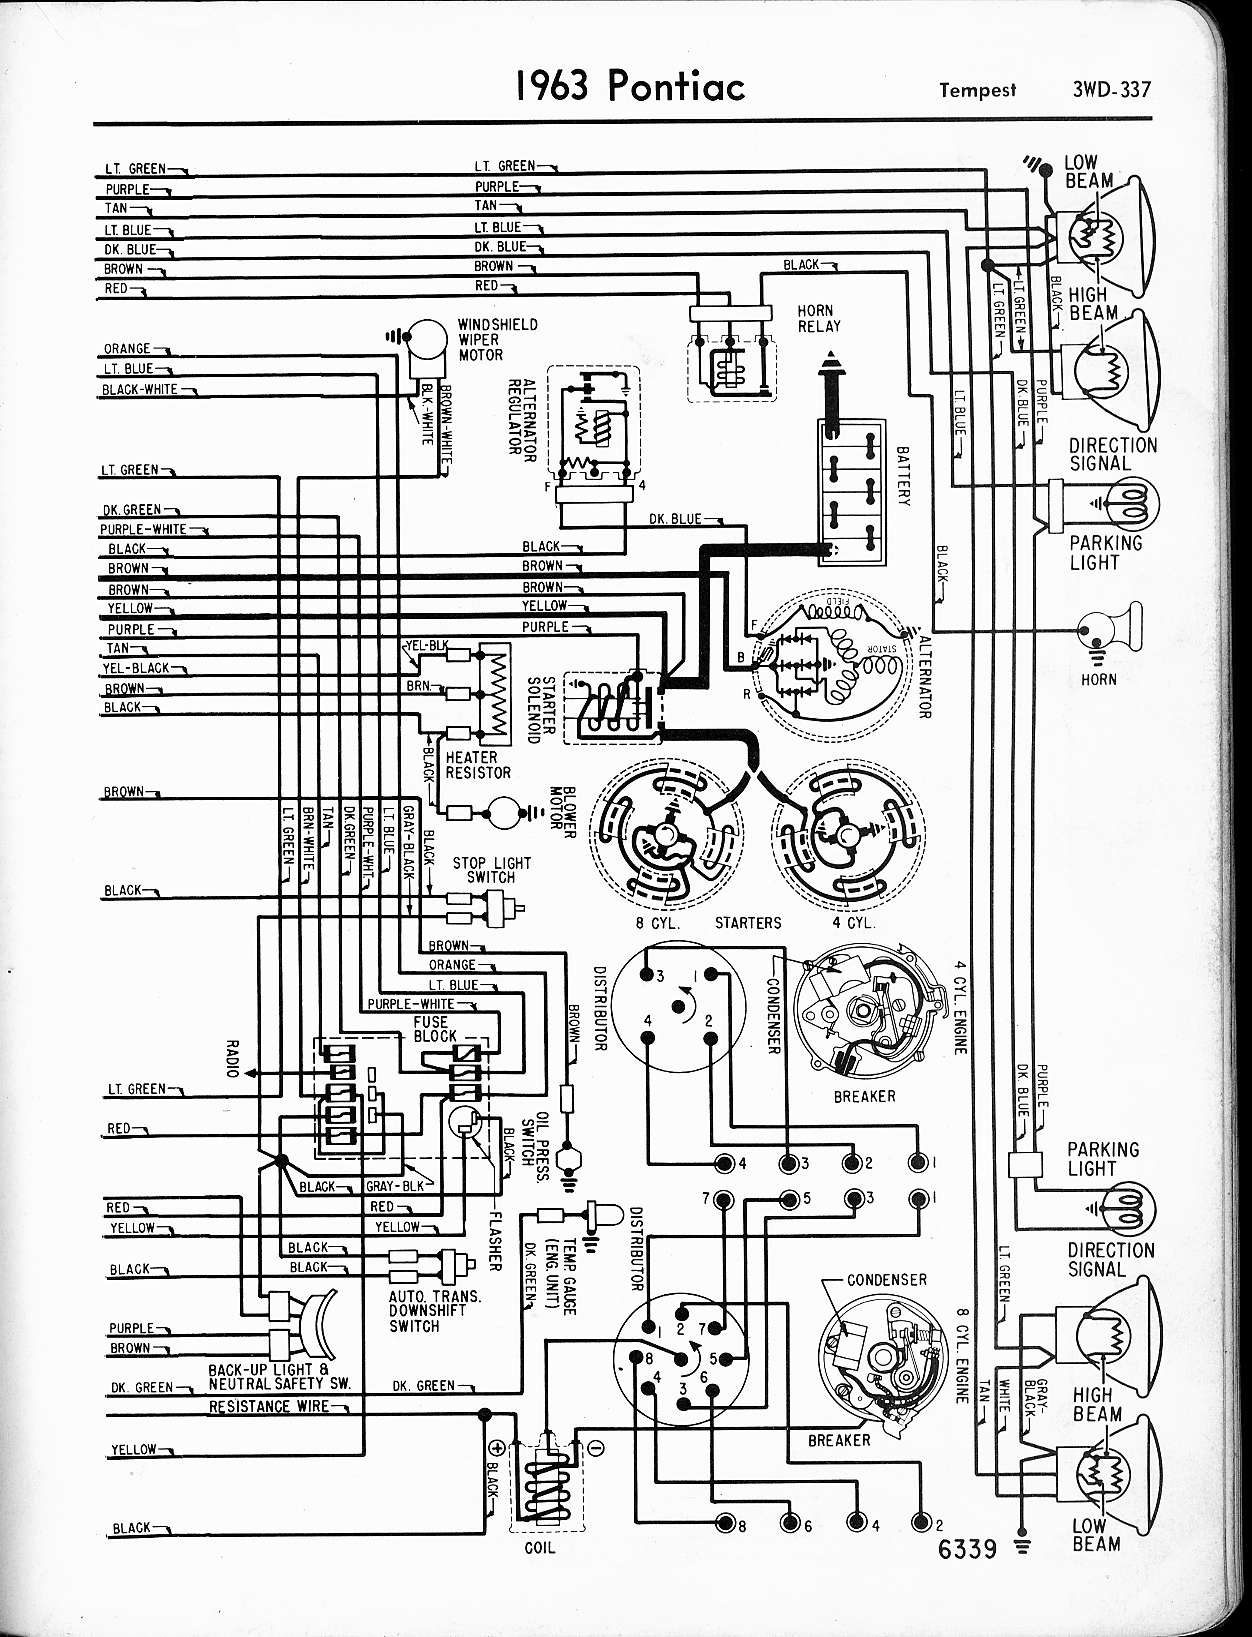 1967 gto horn wiring diagram free download wiring diagrams c4 corvette fuse box wallace racing wiring diagrams 68 chevelle wiring diagram 1963 tempest